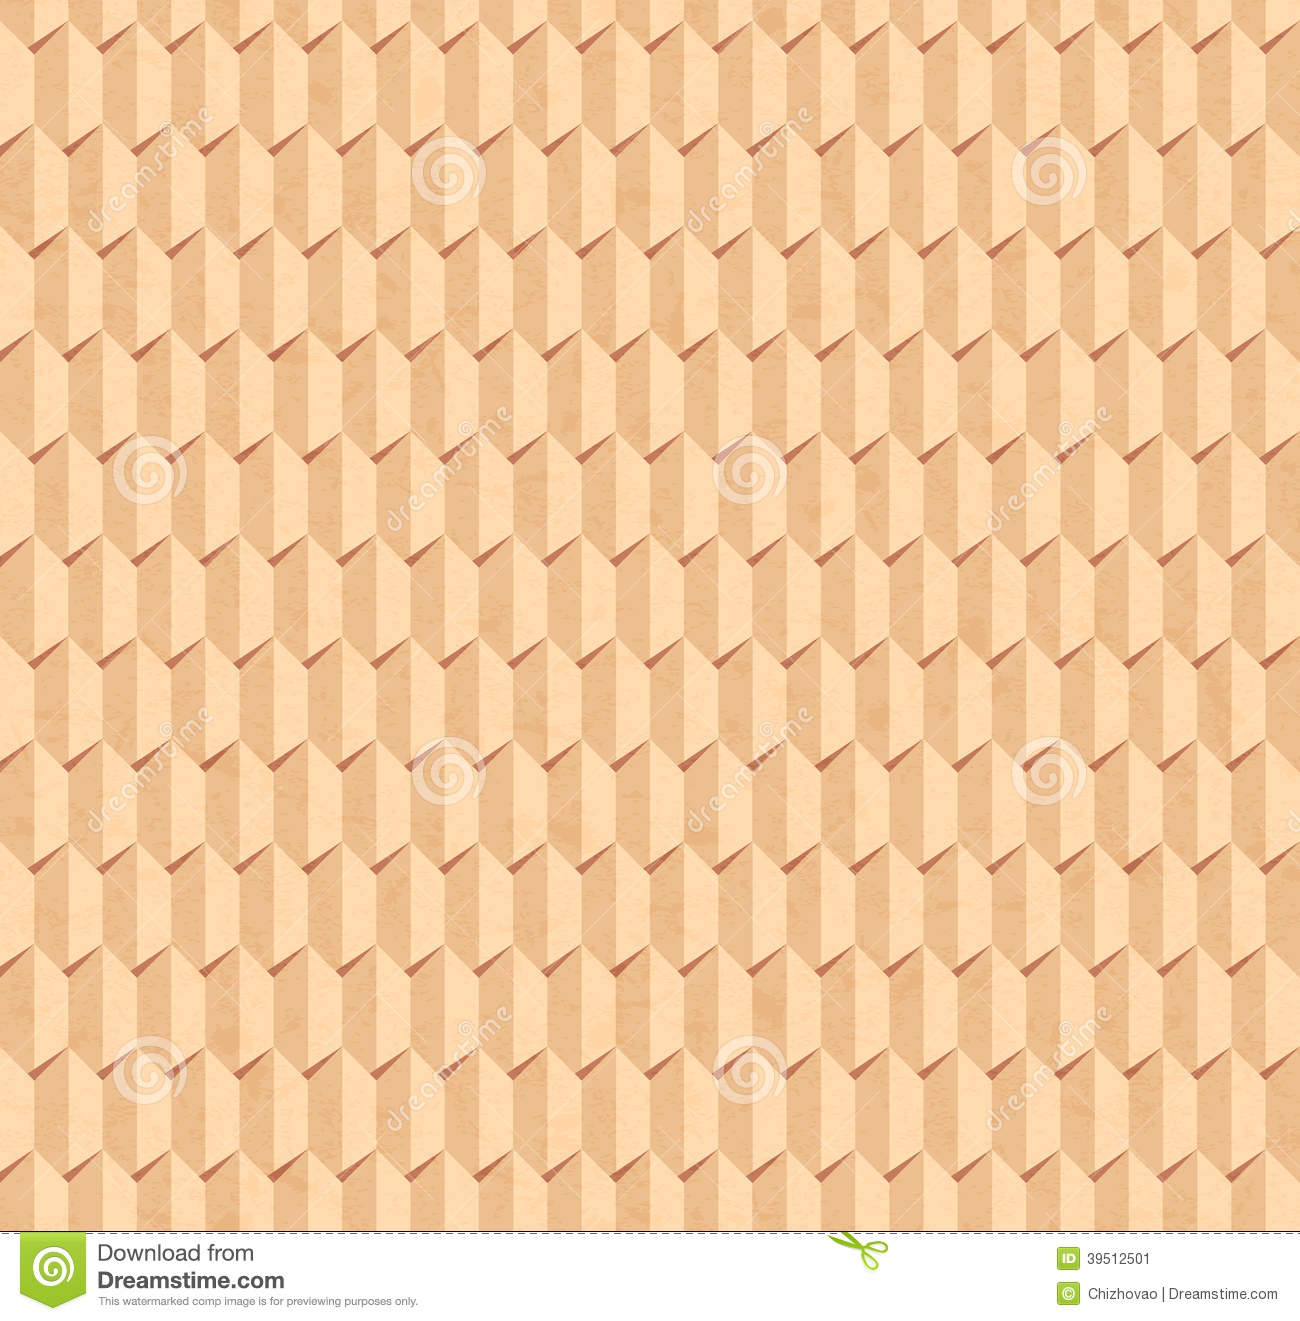 Vector seamless pattern of relief paper